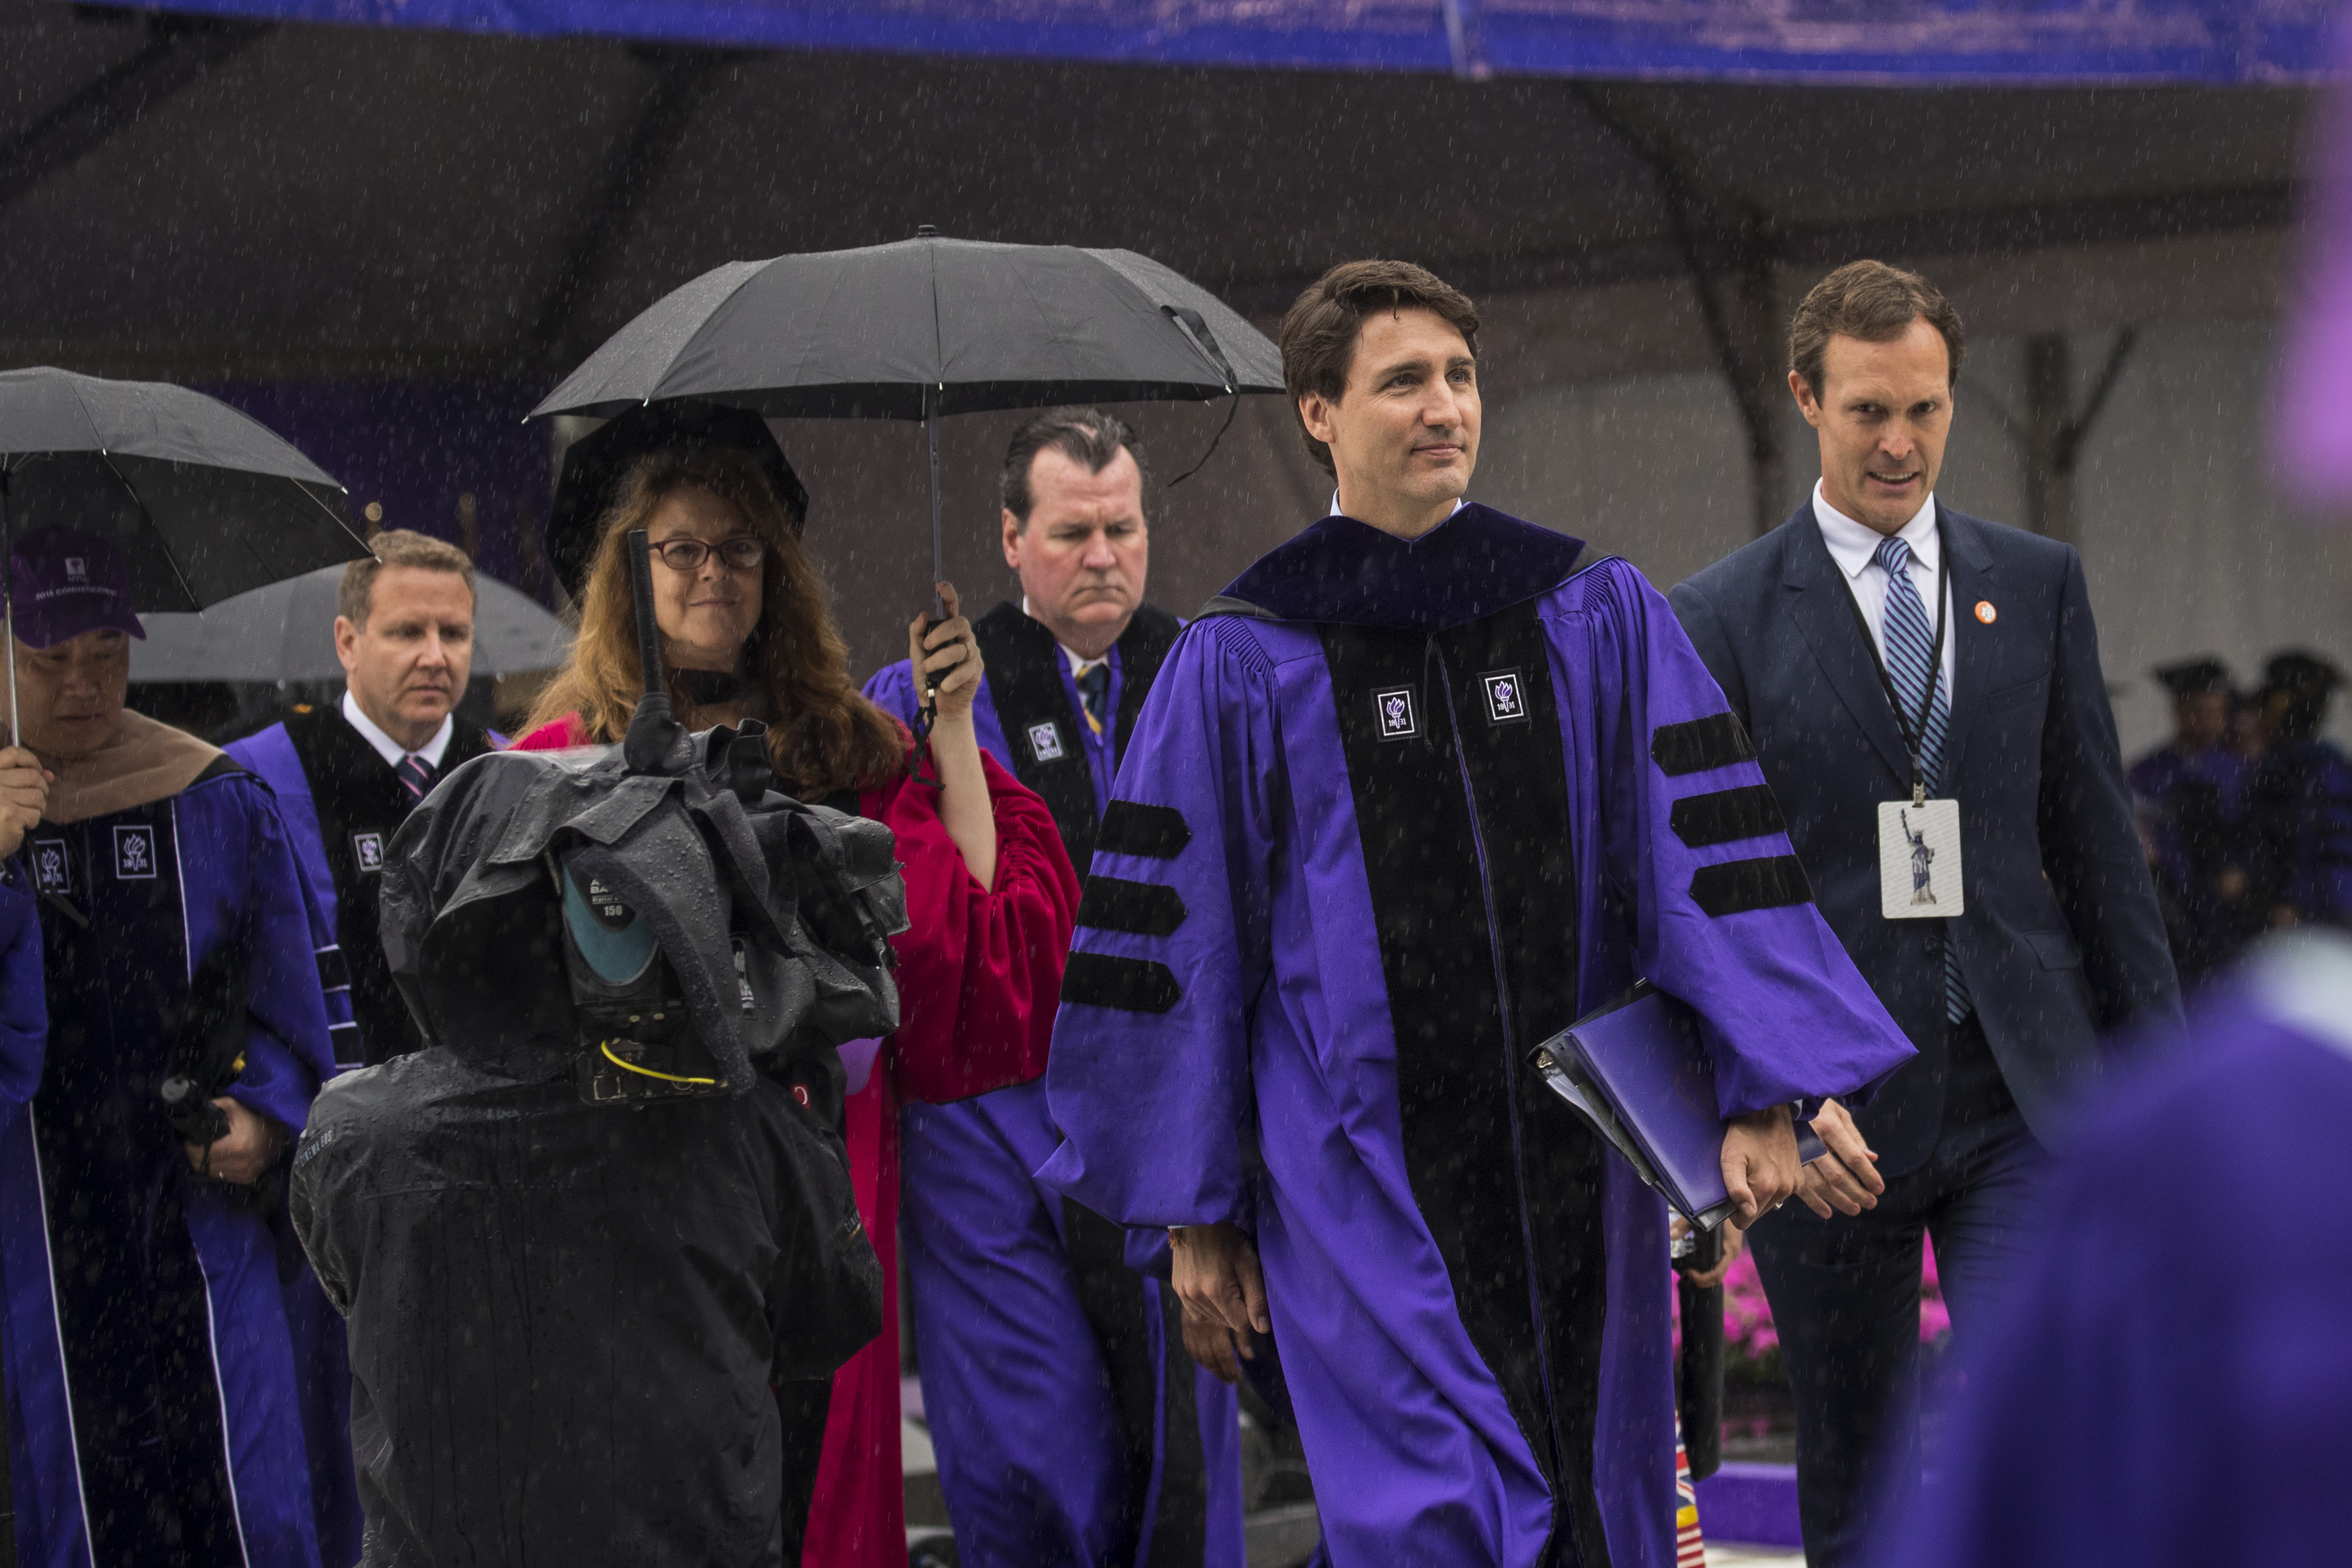 Canadian Prime Minister Justin Trudeau exits New York University's commencement ceremony at Yankee Stadium, May 16, 2018 in the Bronx borough of New York City. Drew Angerer/Getty Images